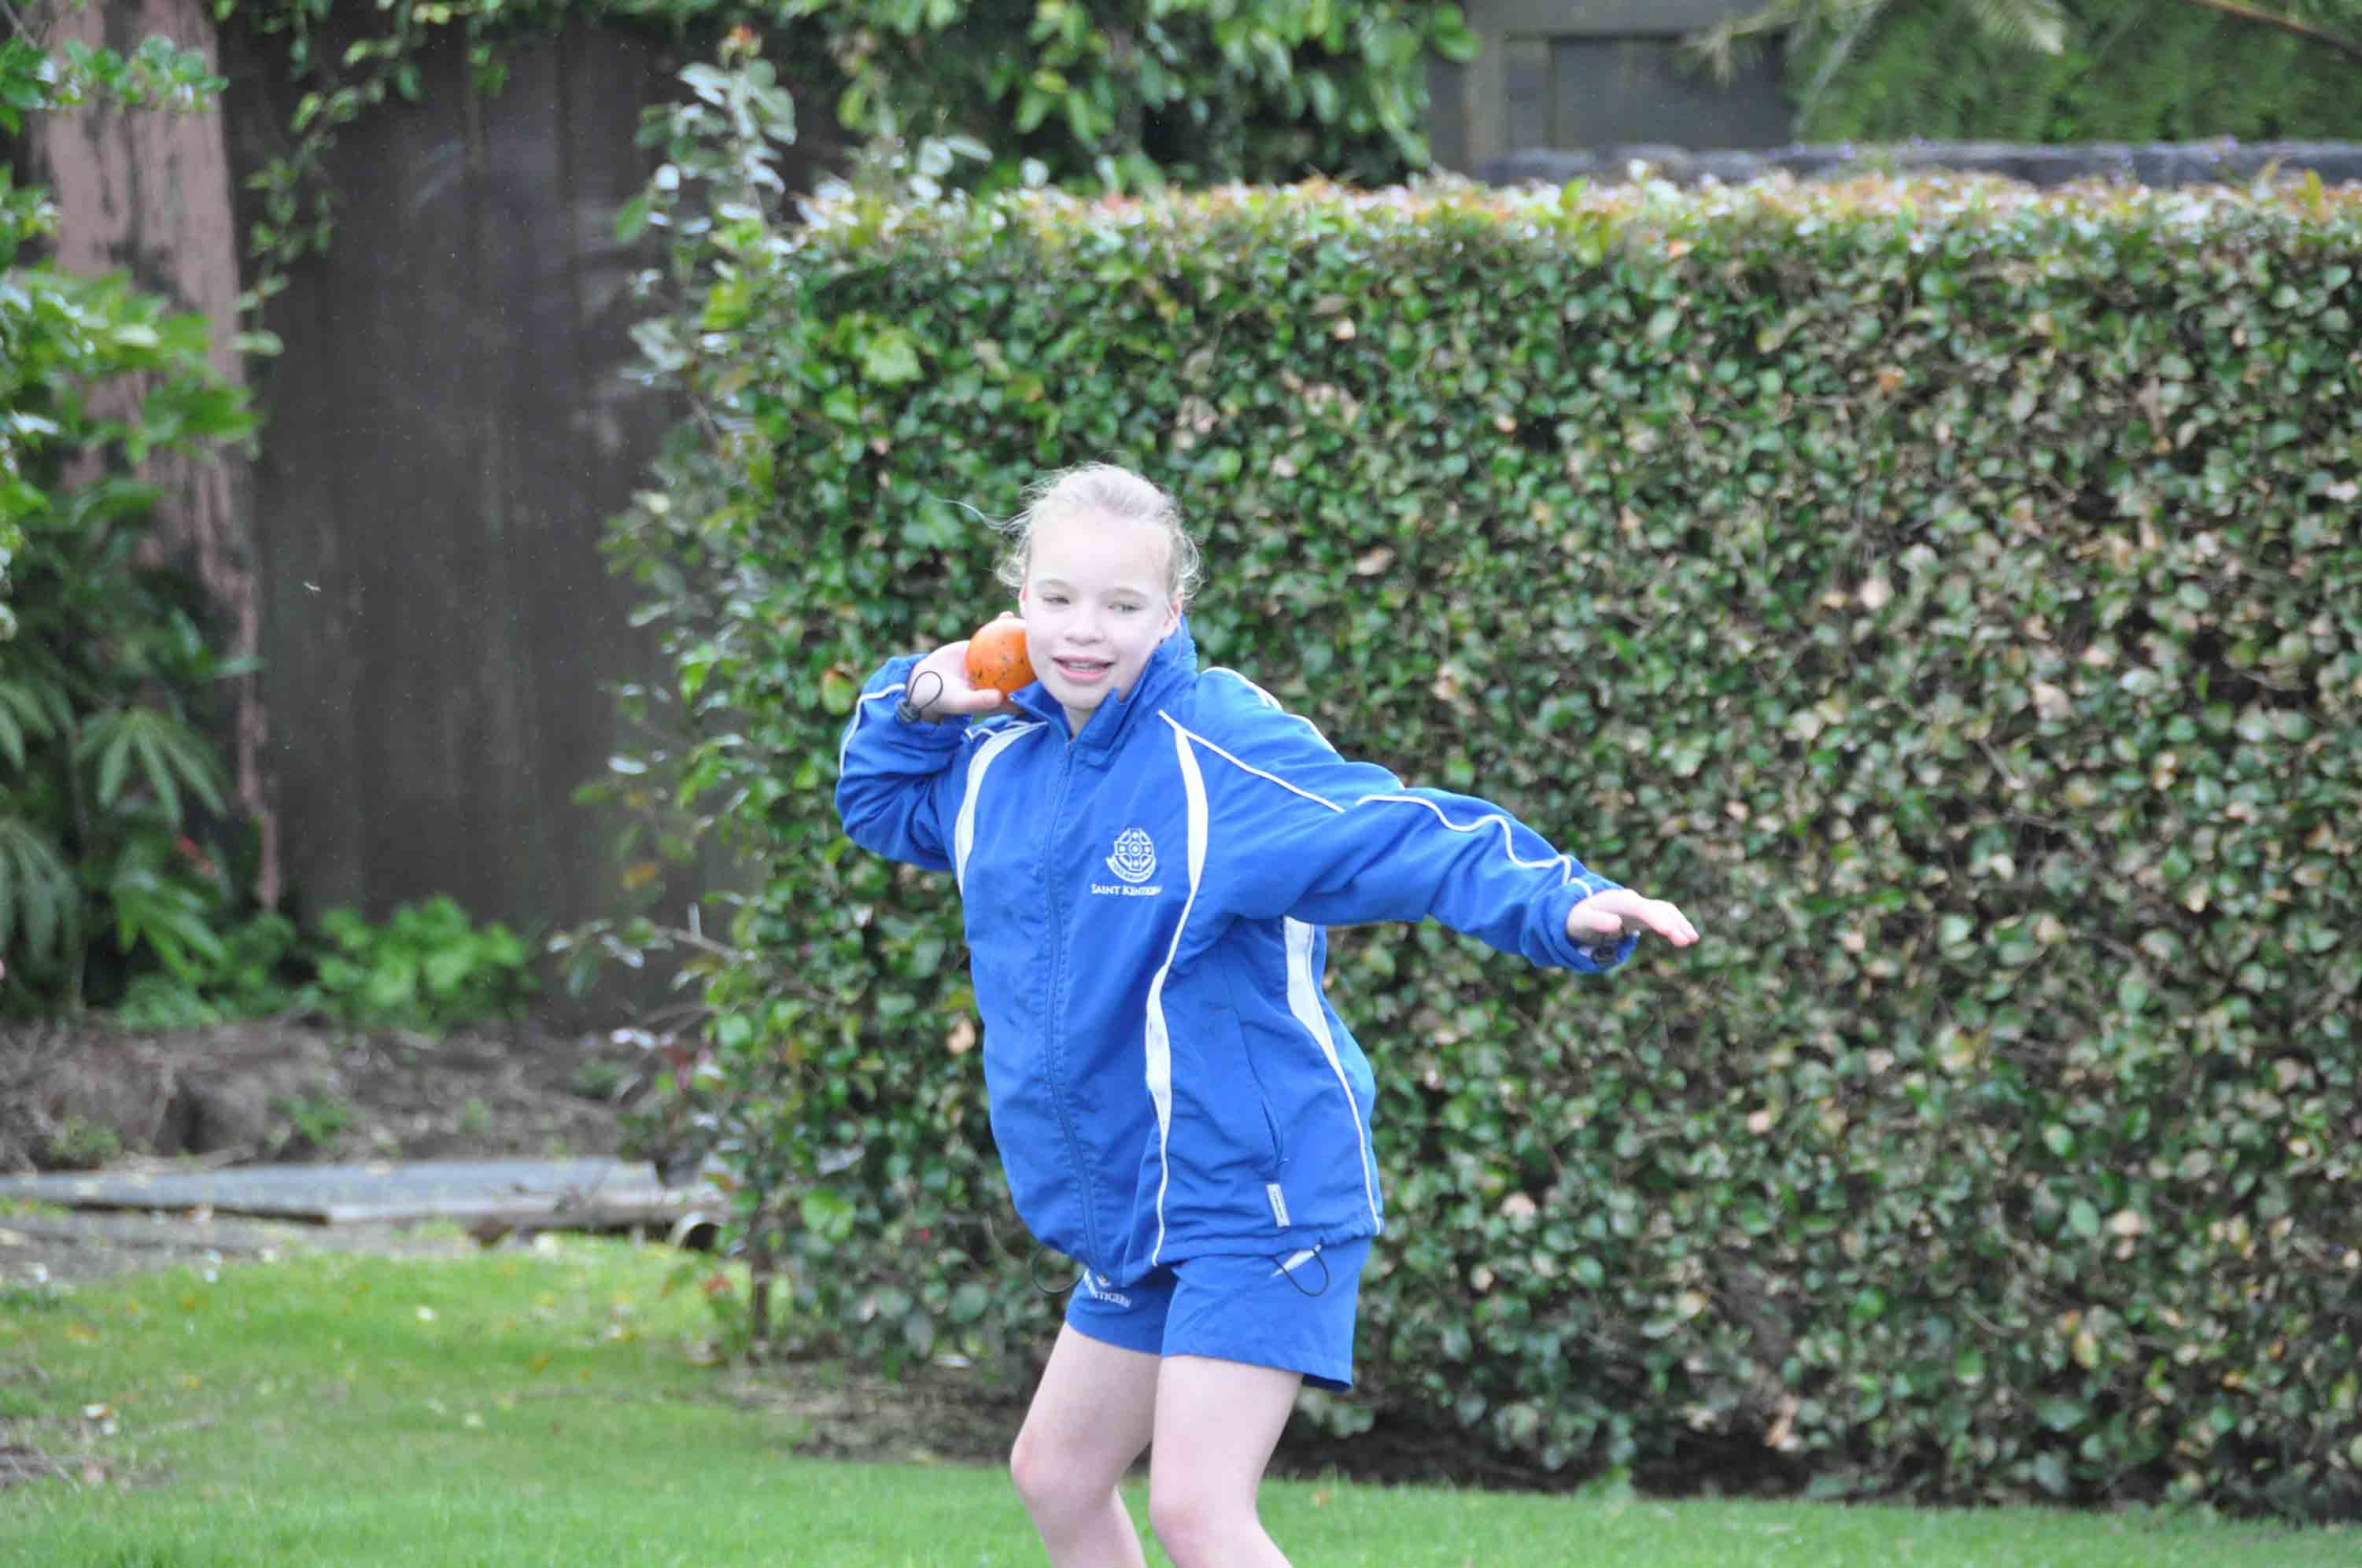 17 Saint-Kentigern-Girls'-Schol-Athletics.jpg